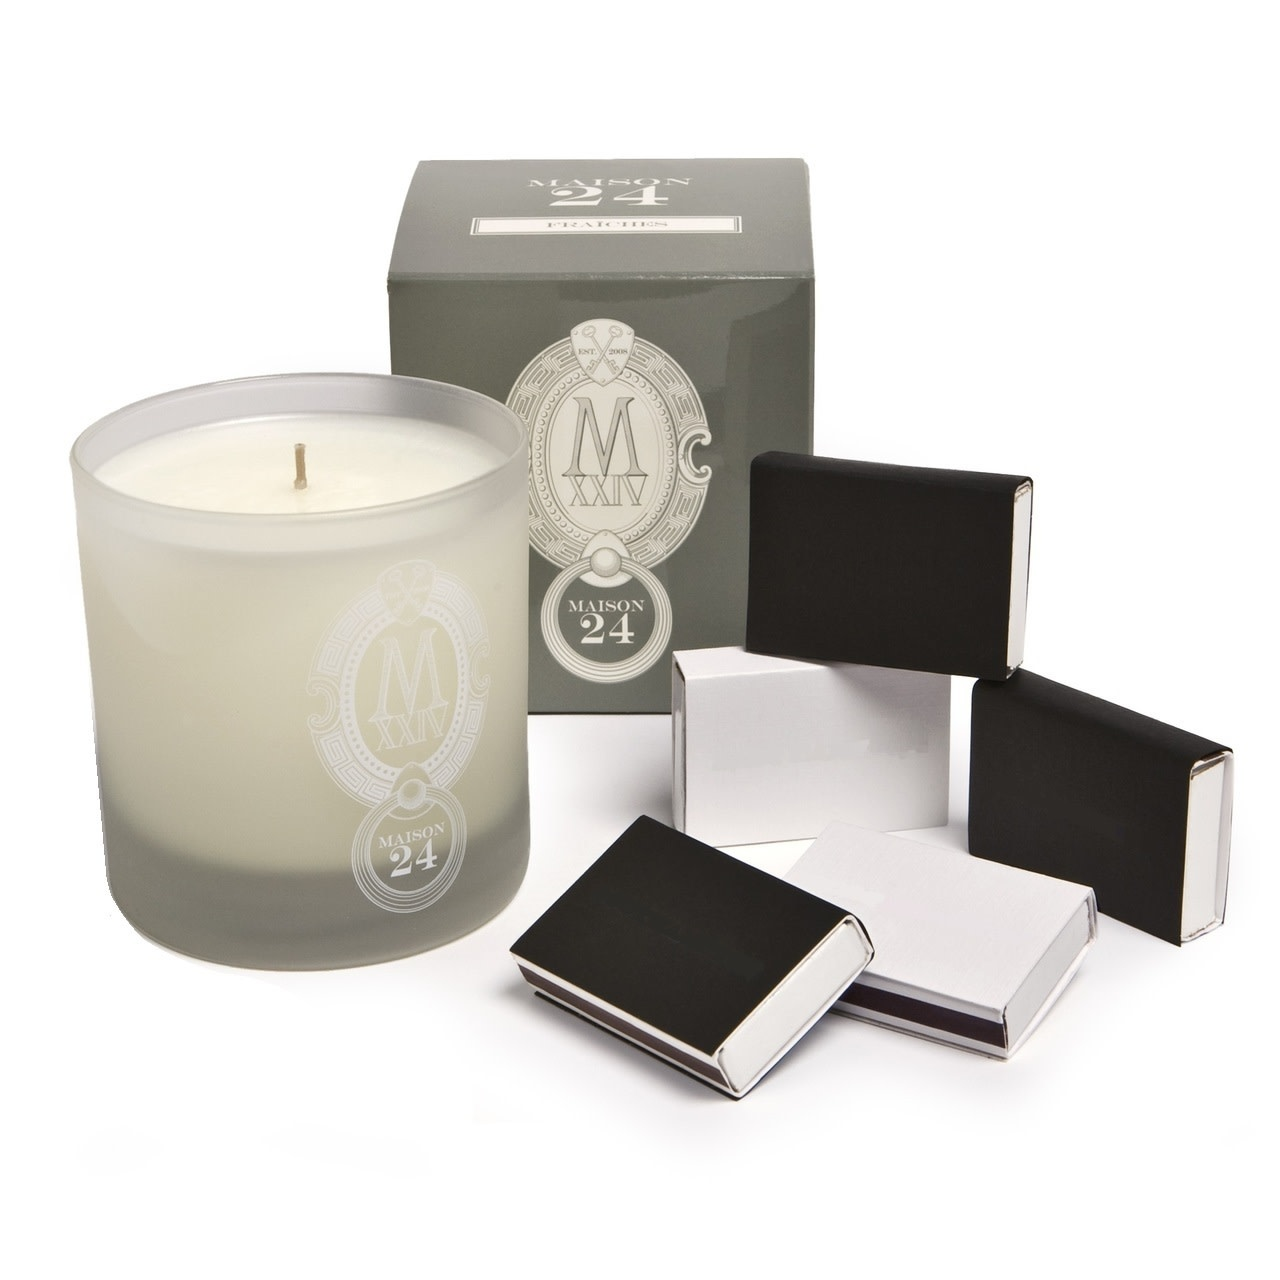 M24 CANDLE FRAICHES-1